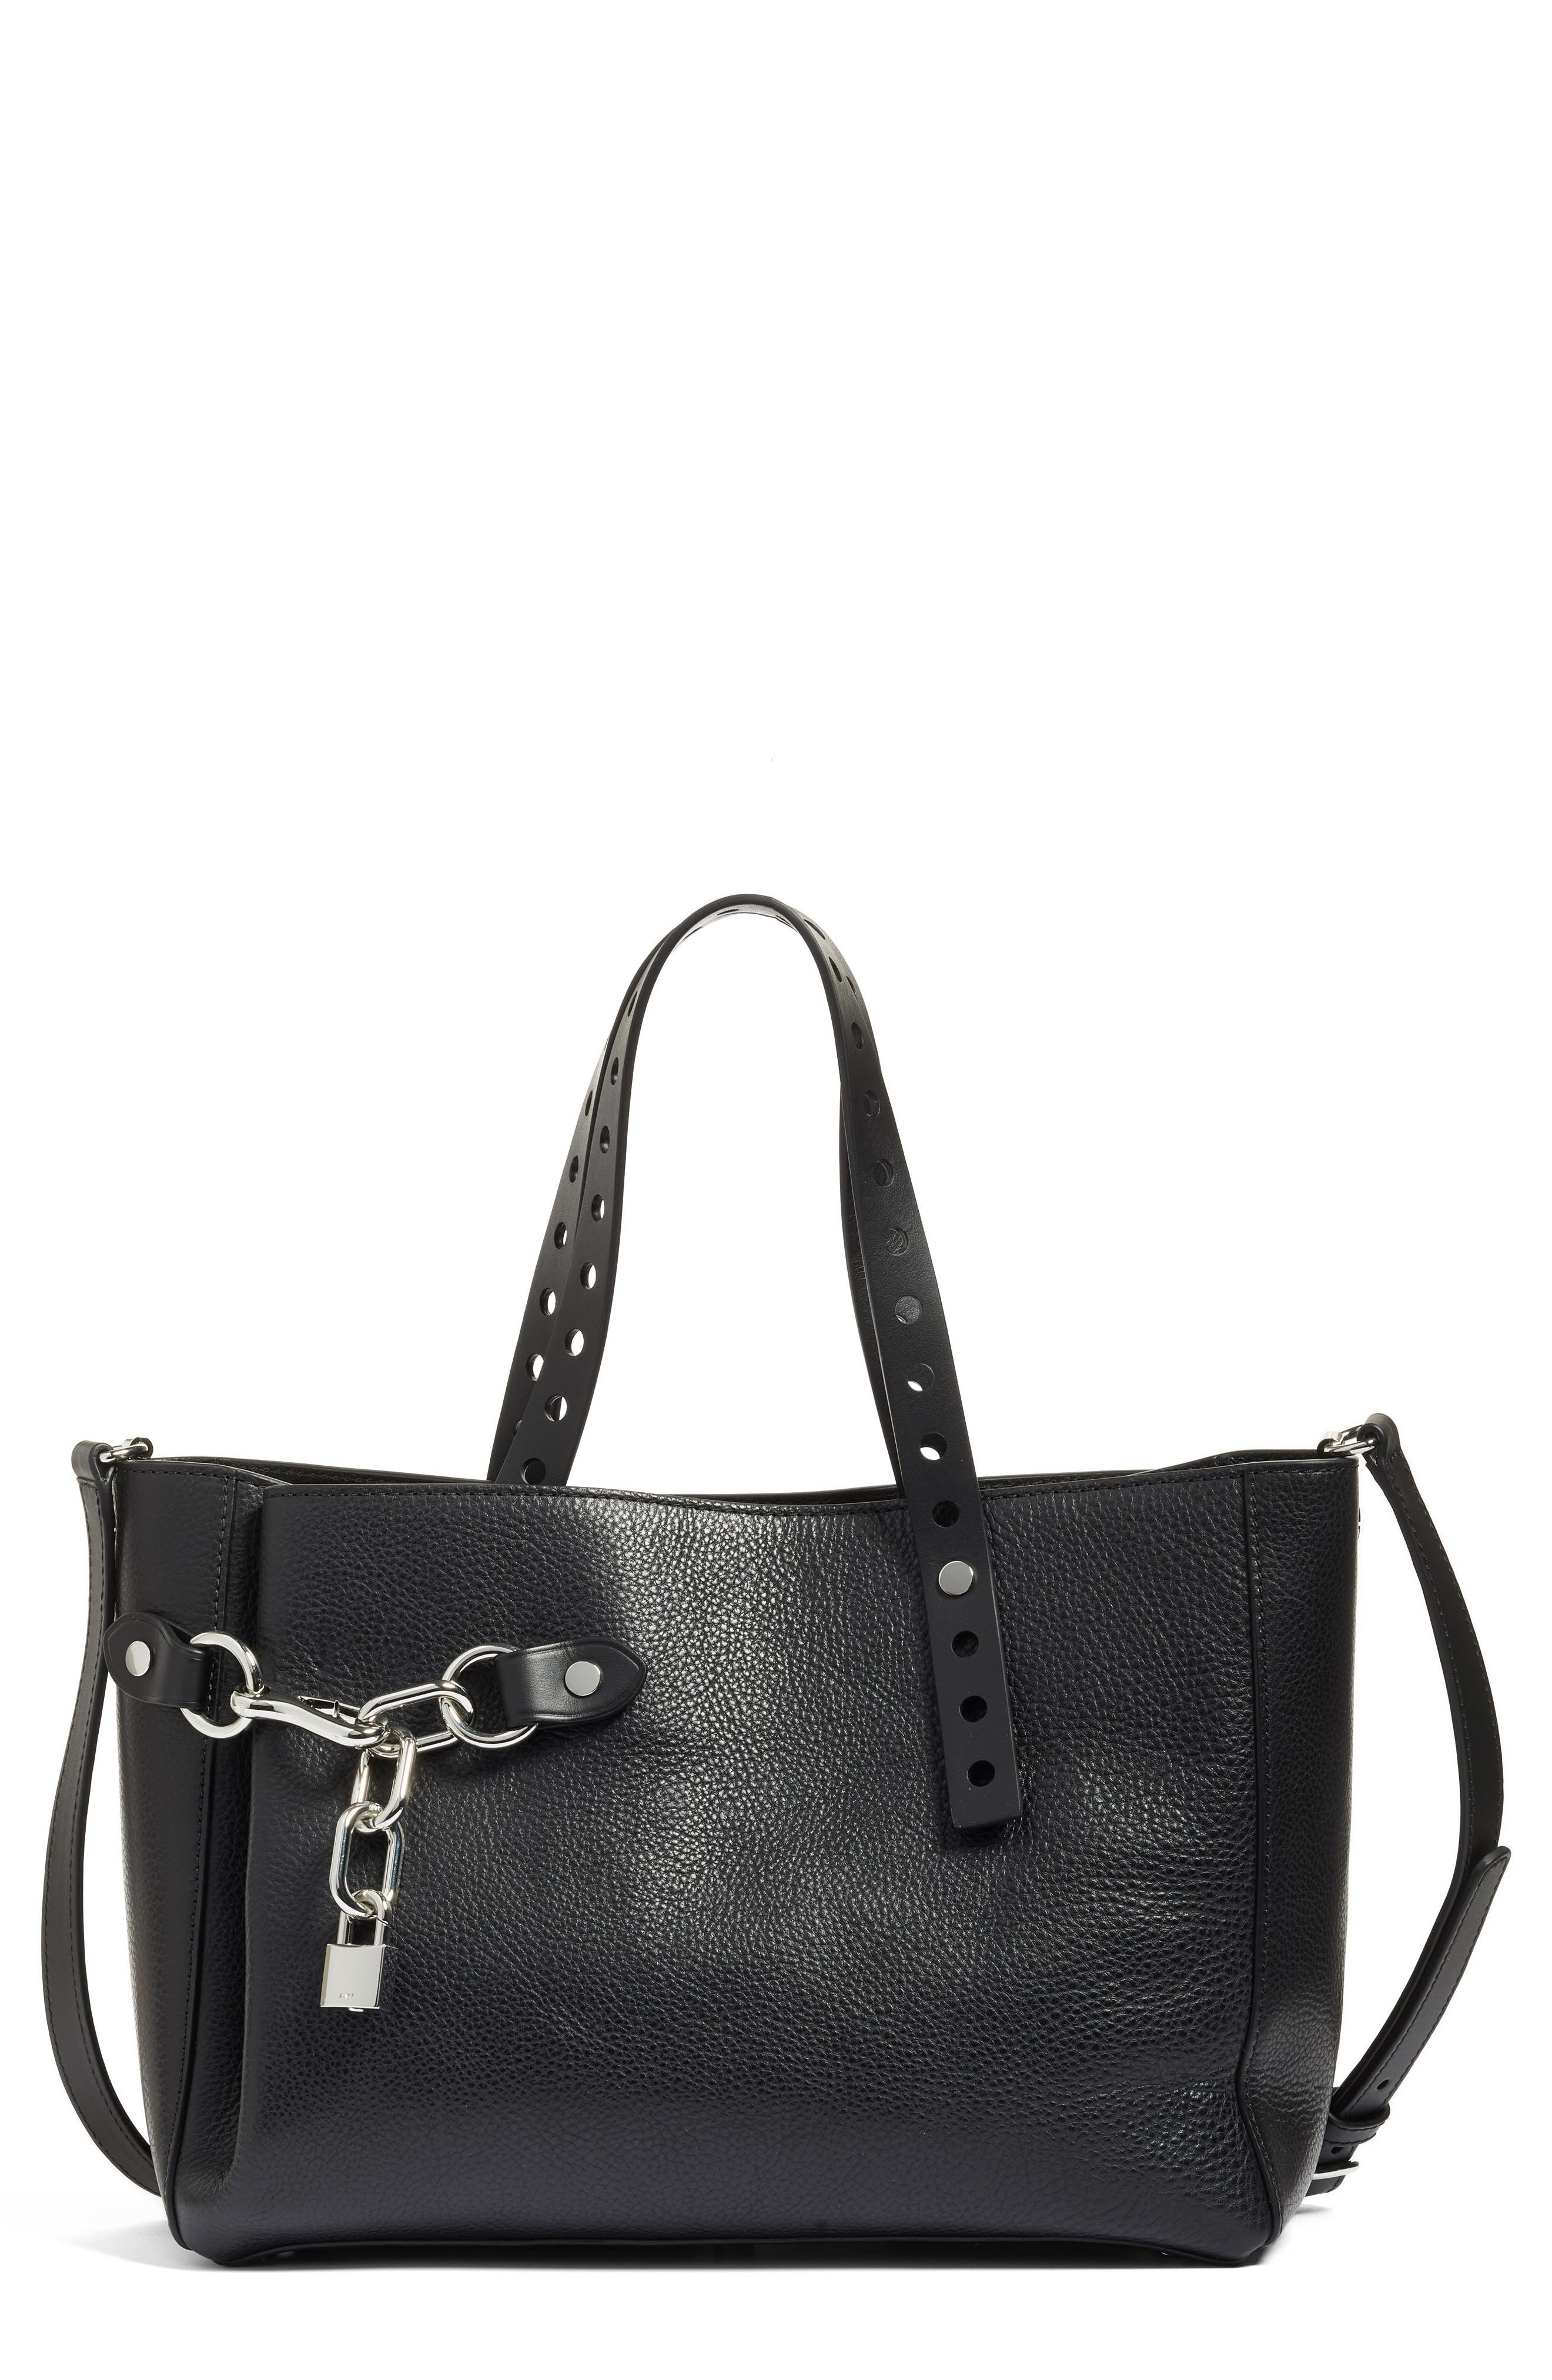 Main Image - Alexander Wang Attica Leather Tote